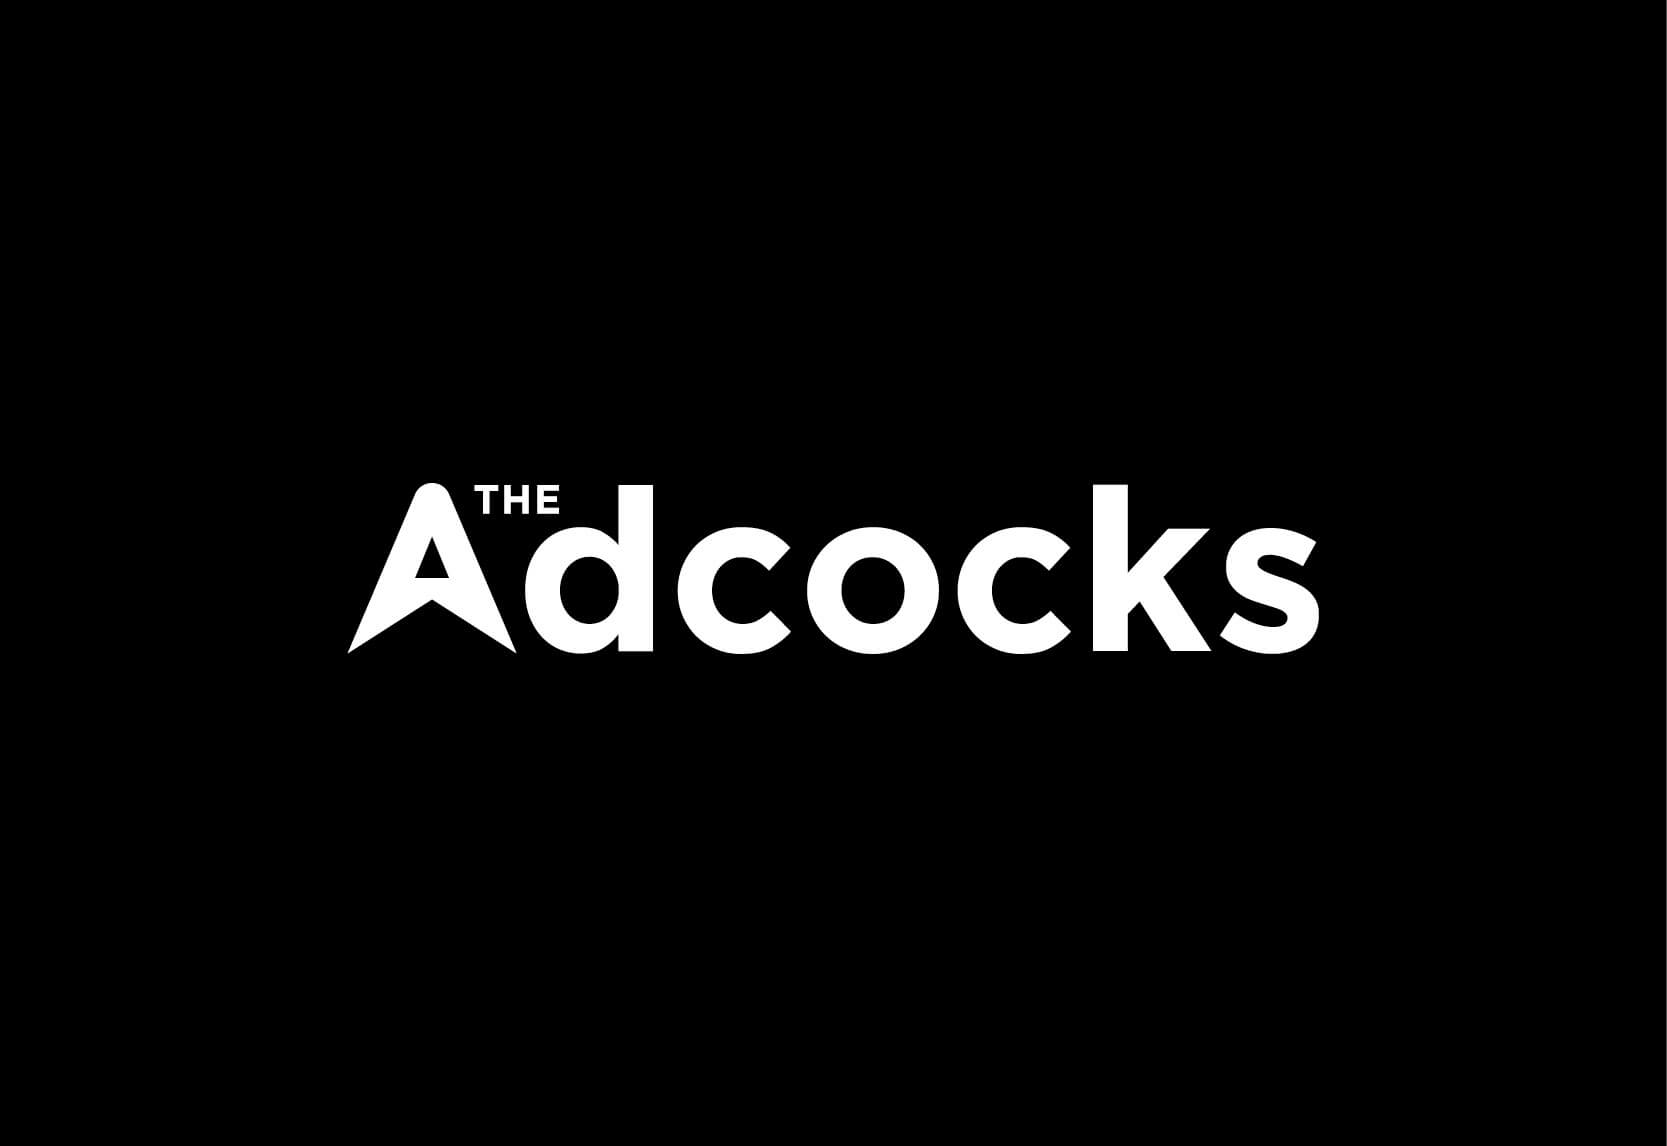 The Adcocks logo